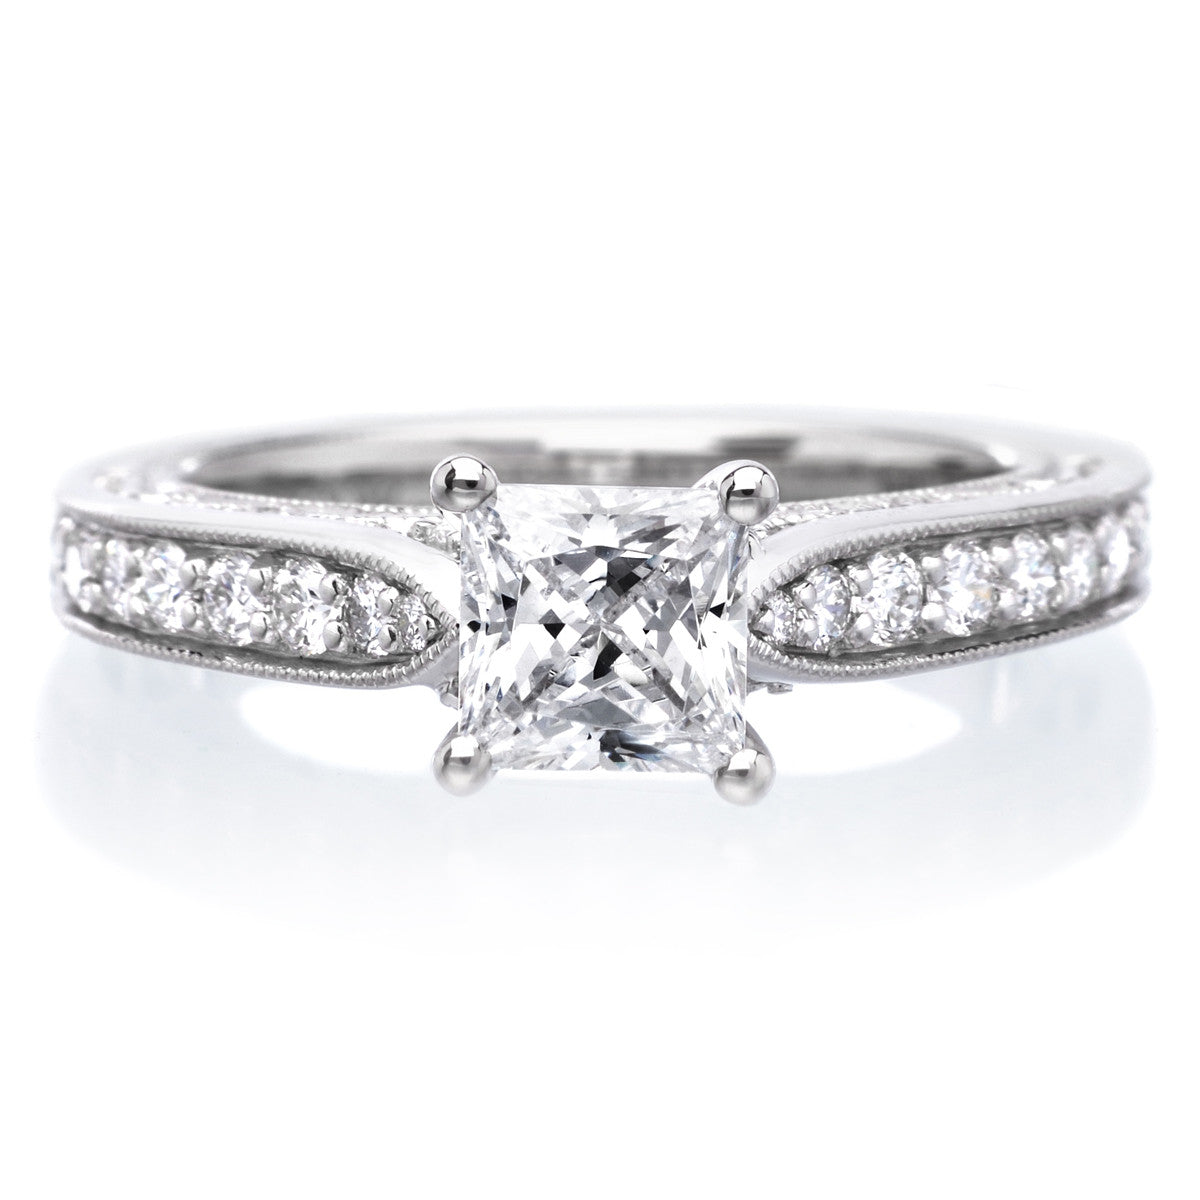 18K White Gold Blanche Engagement Ring